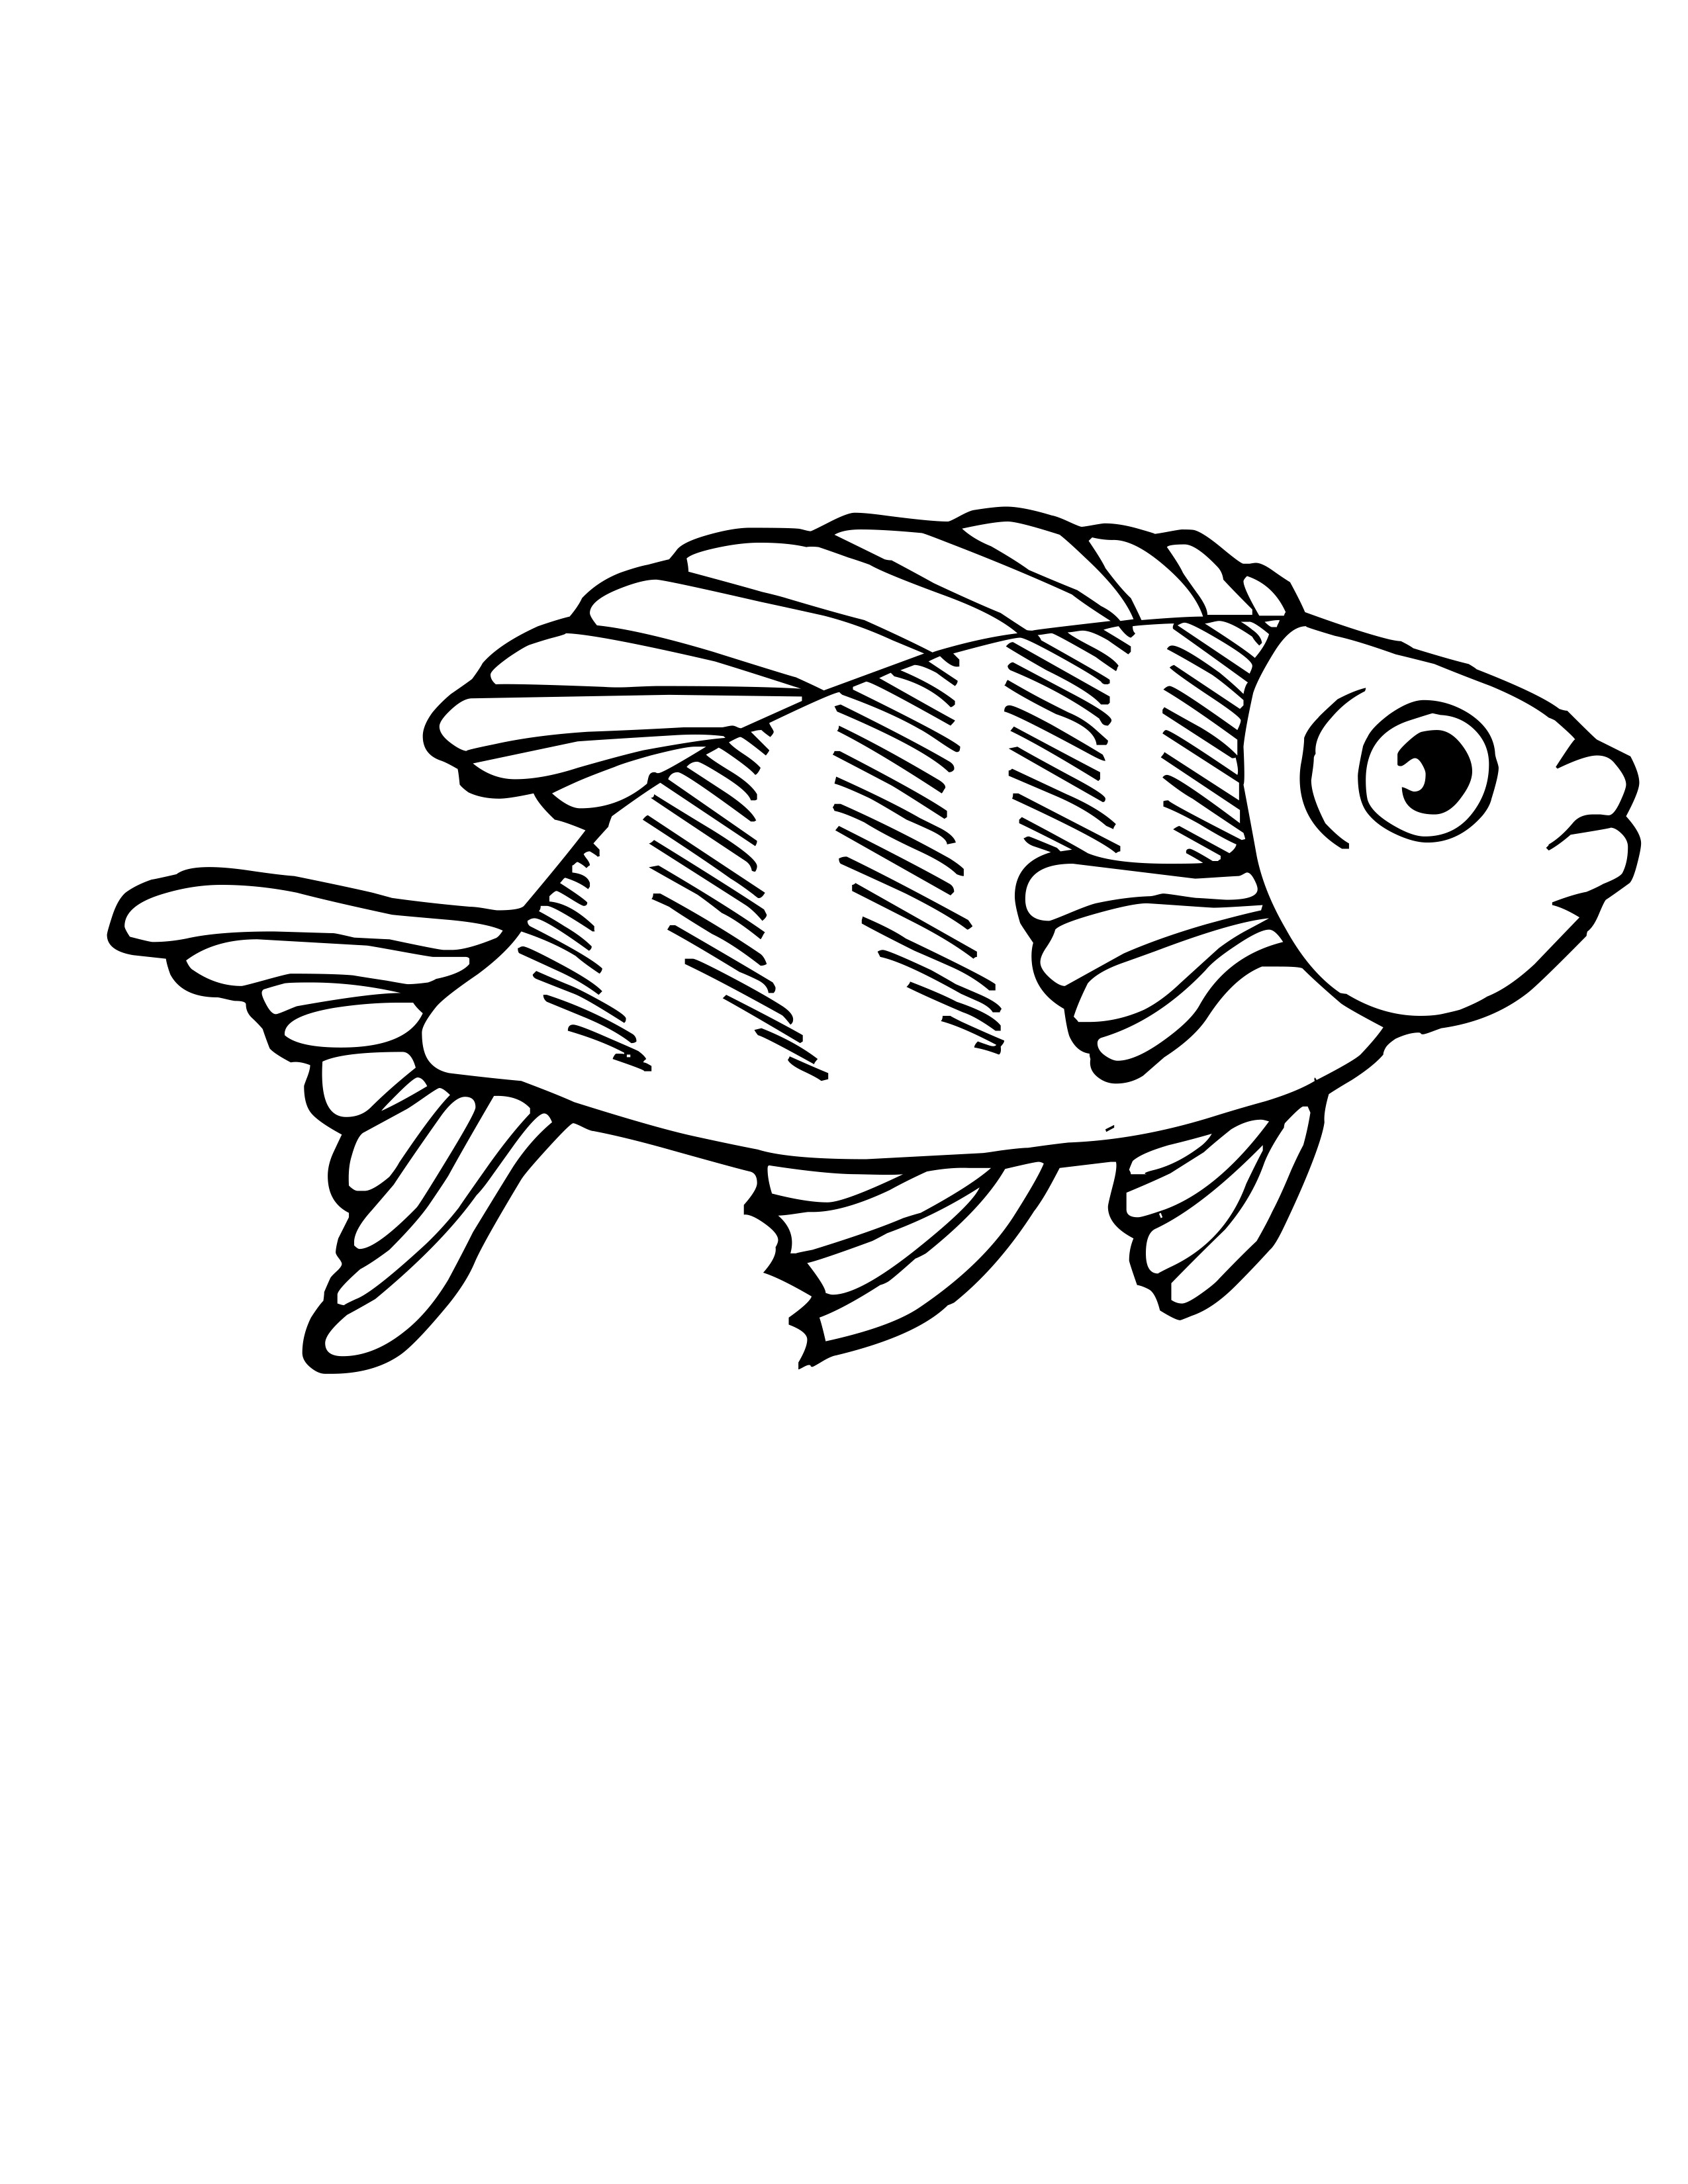 Heart and rainbow coloring pages - Rainbow Fish Coloring Page For Kid Fish Coloring Pagesjpg